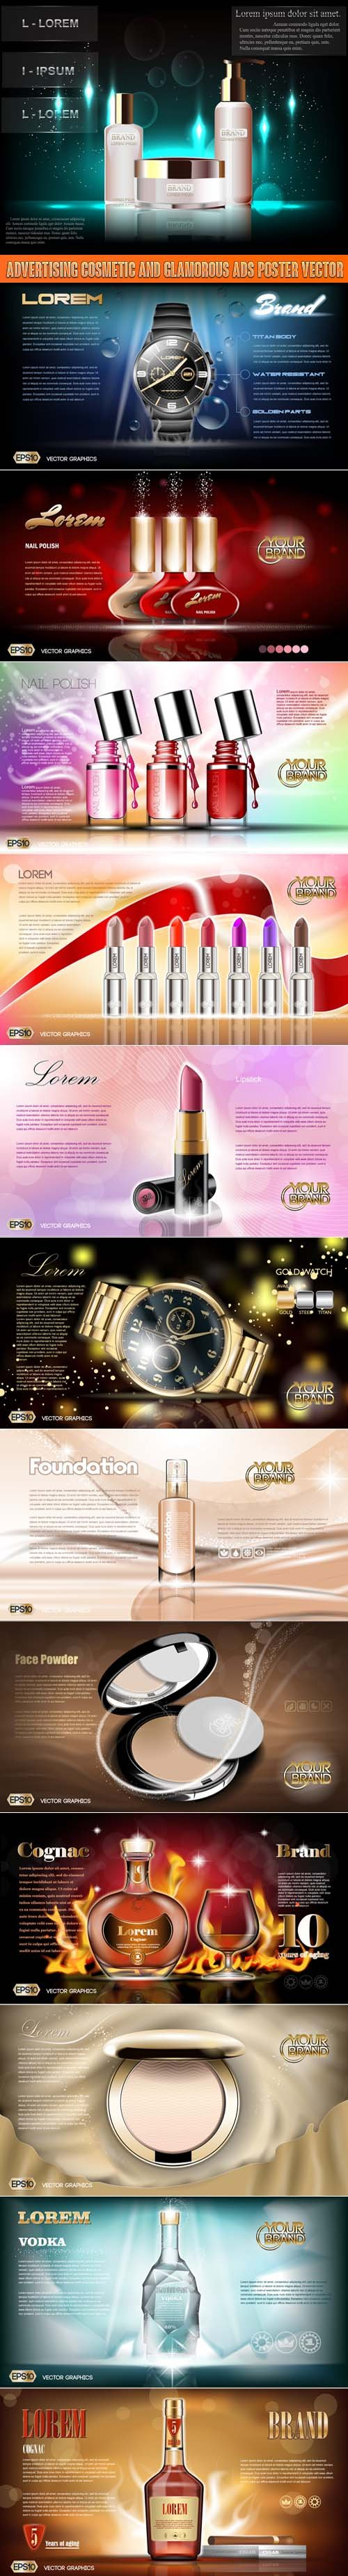 Advertising Cosmetic and Glamorous ads Poster vector